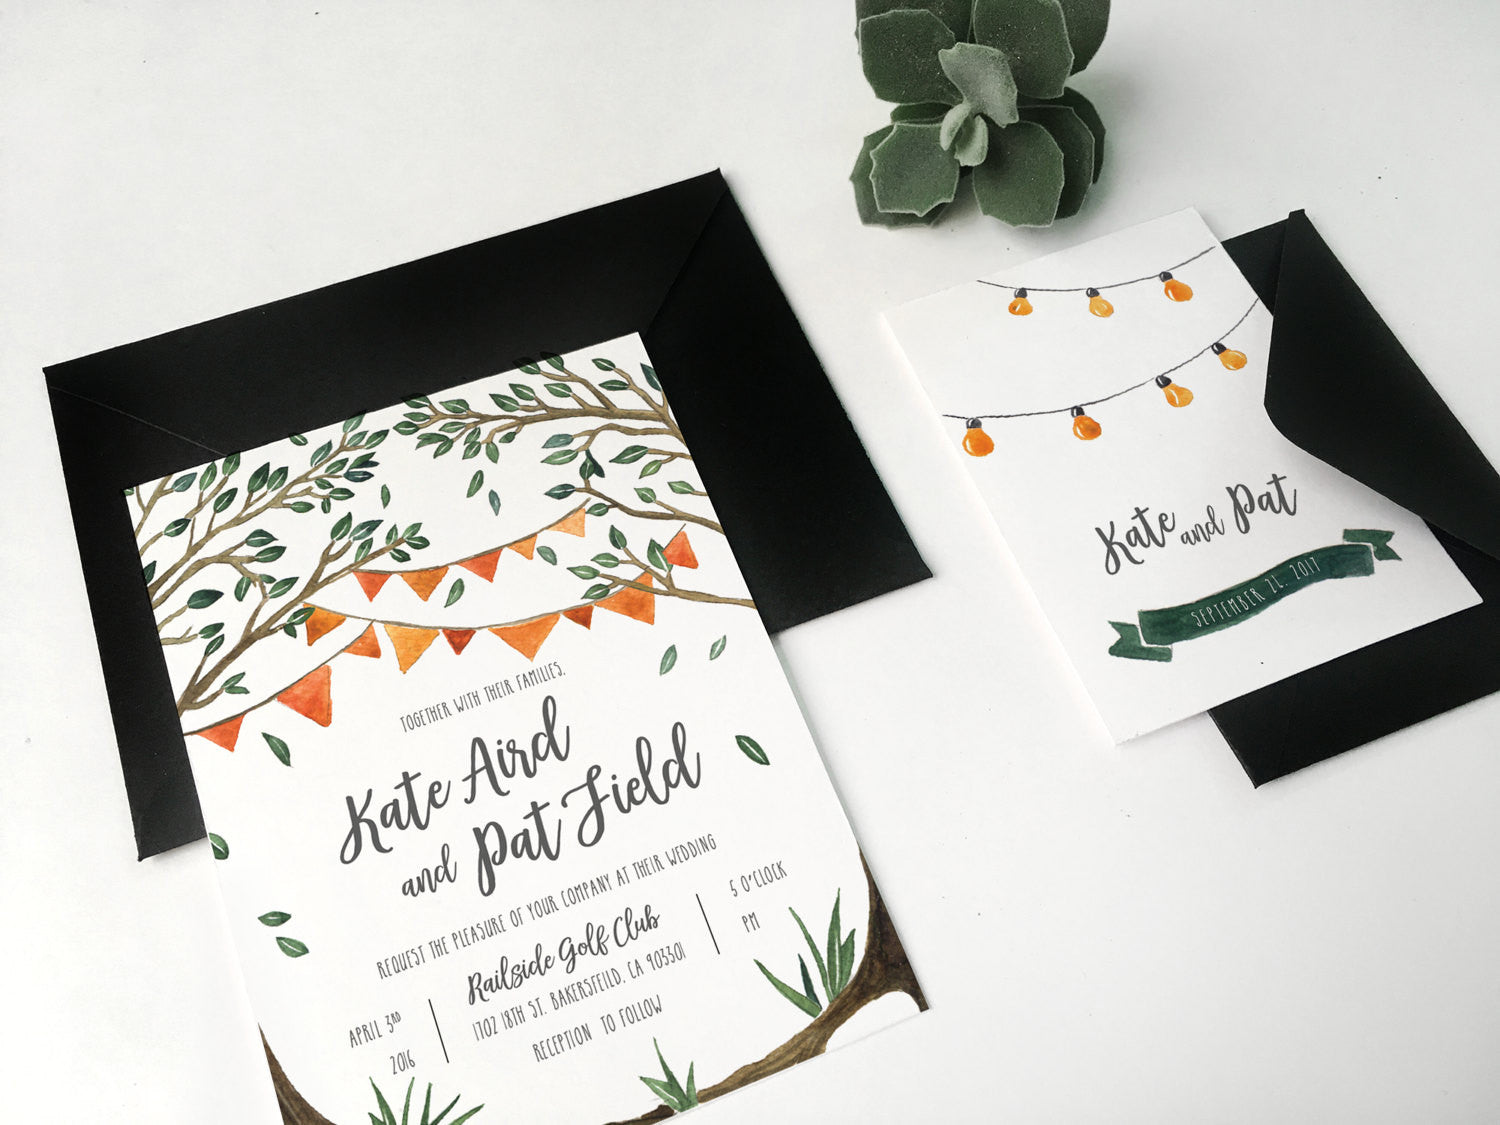 03. Under Canopy String of Lights Country Rustic Invitation ...